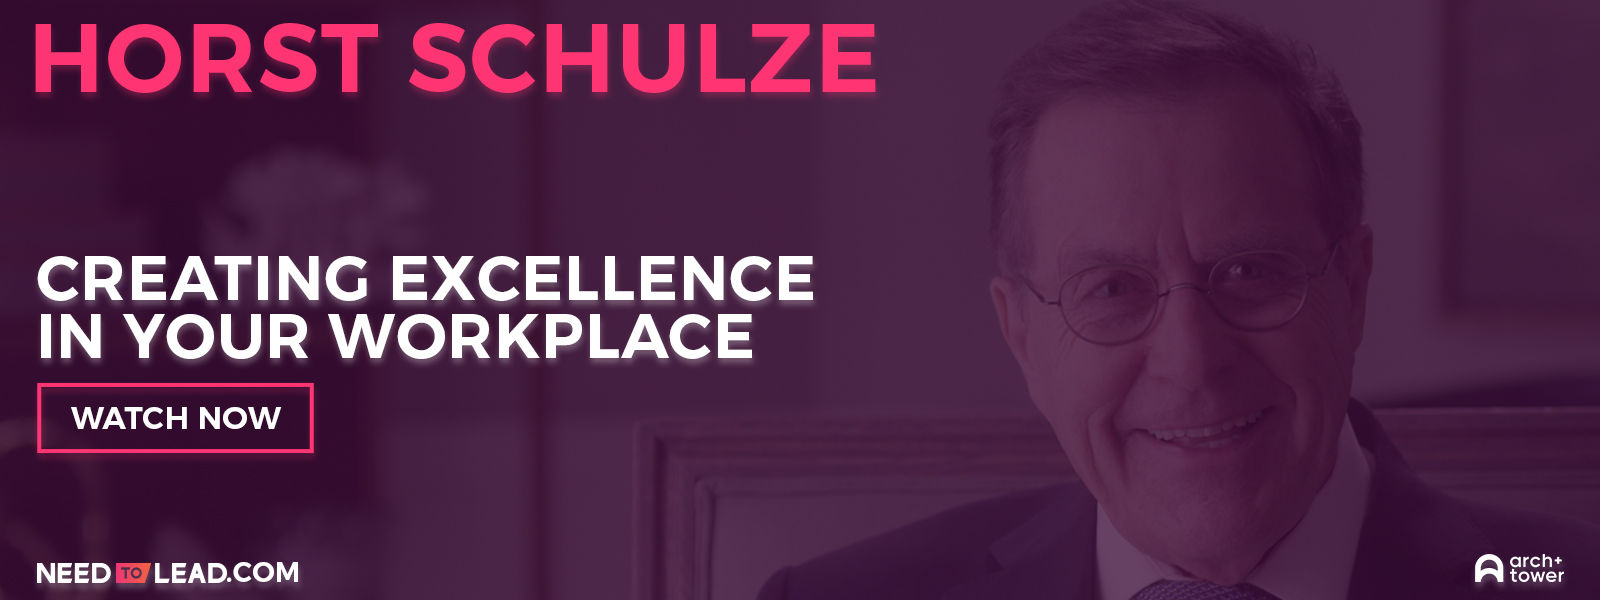 Creating Excellence in Your Workplace